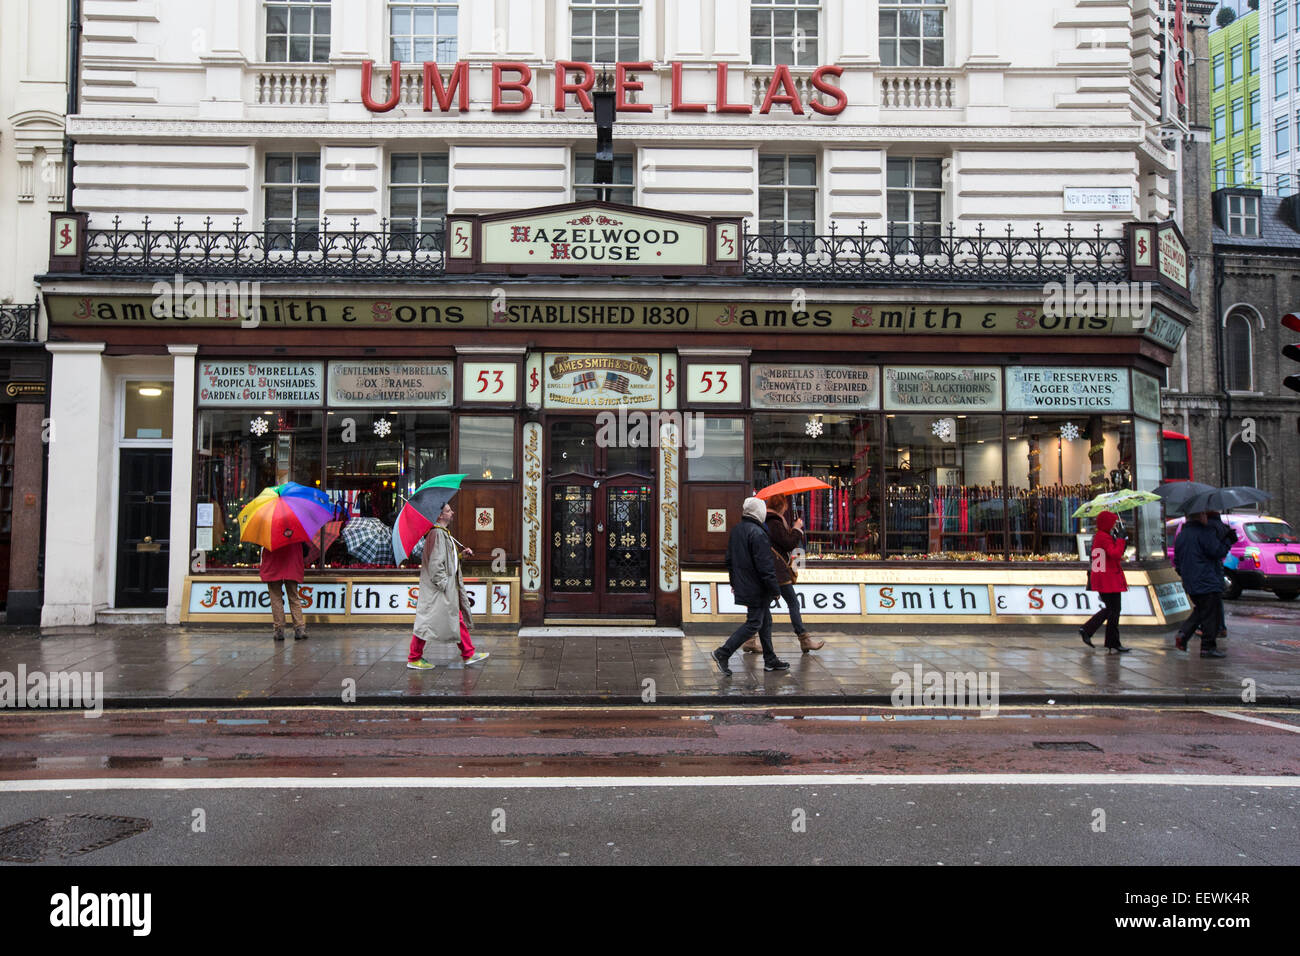 James Smith and Sons, New Oxford Street-Victorian shop front selling Umbrellas and Ladies and Gentlemens canes and - Stock Image